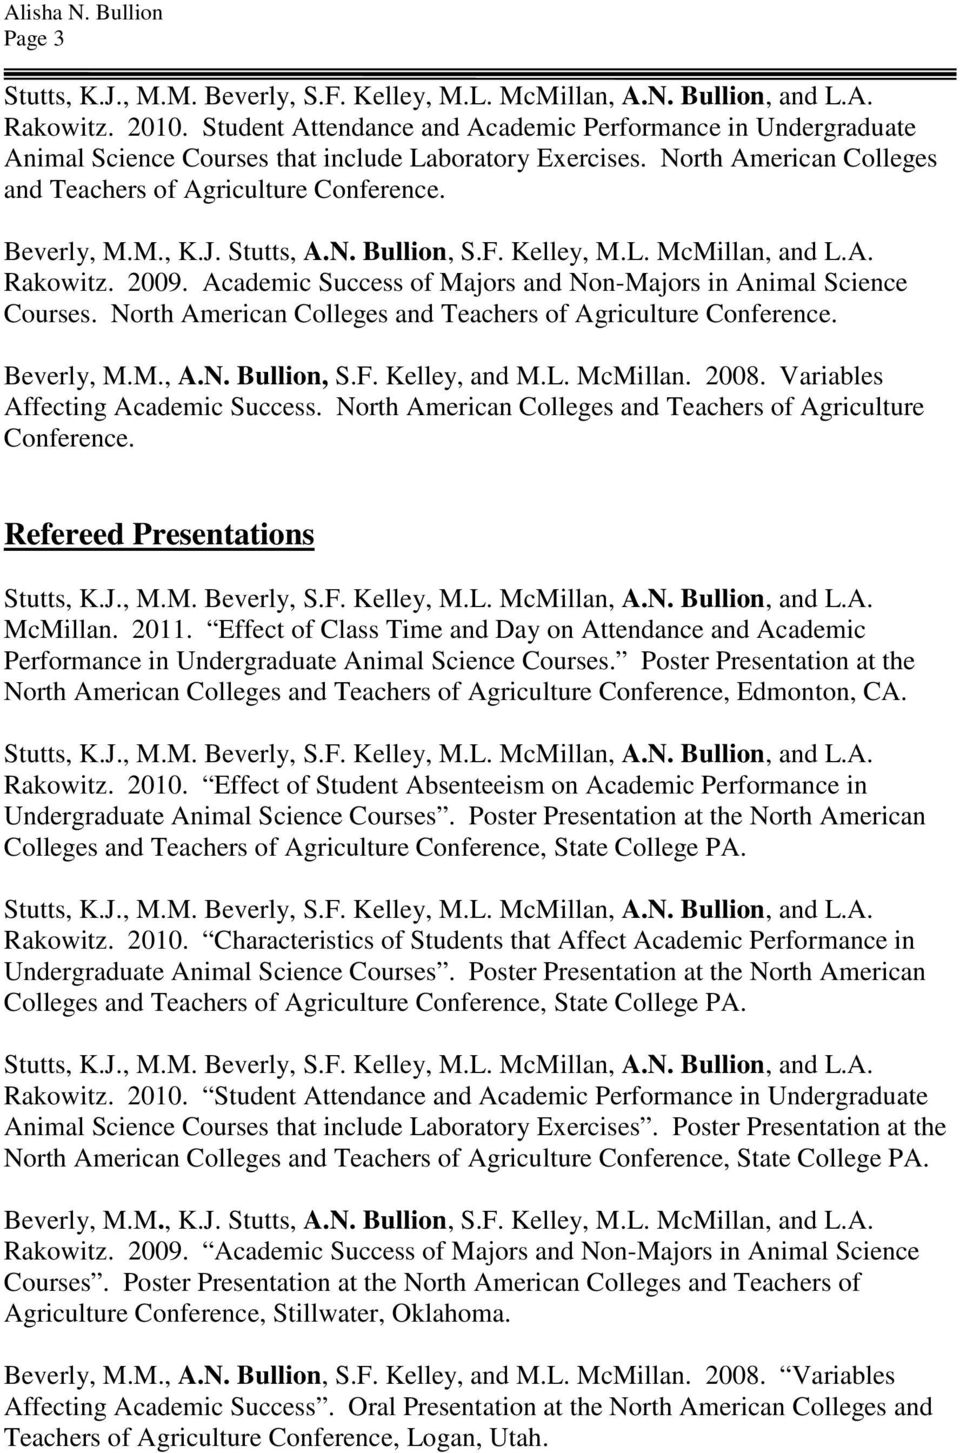 Academic Success of Majors and Non-Majors in Animal Science Courses. North American Colleges and Teachers of Agriculture Conference. Beverly, M.M., A.N. Bullion, S.F. Kelley, and M.L. McMillan. 2008.